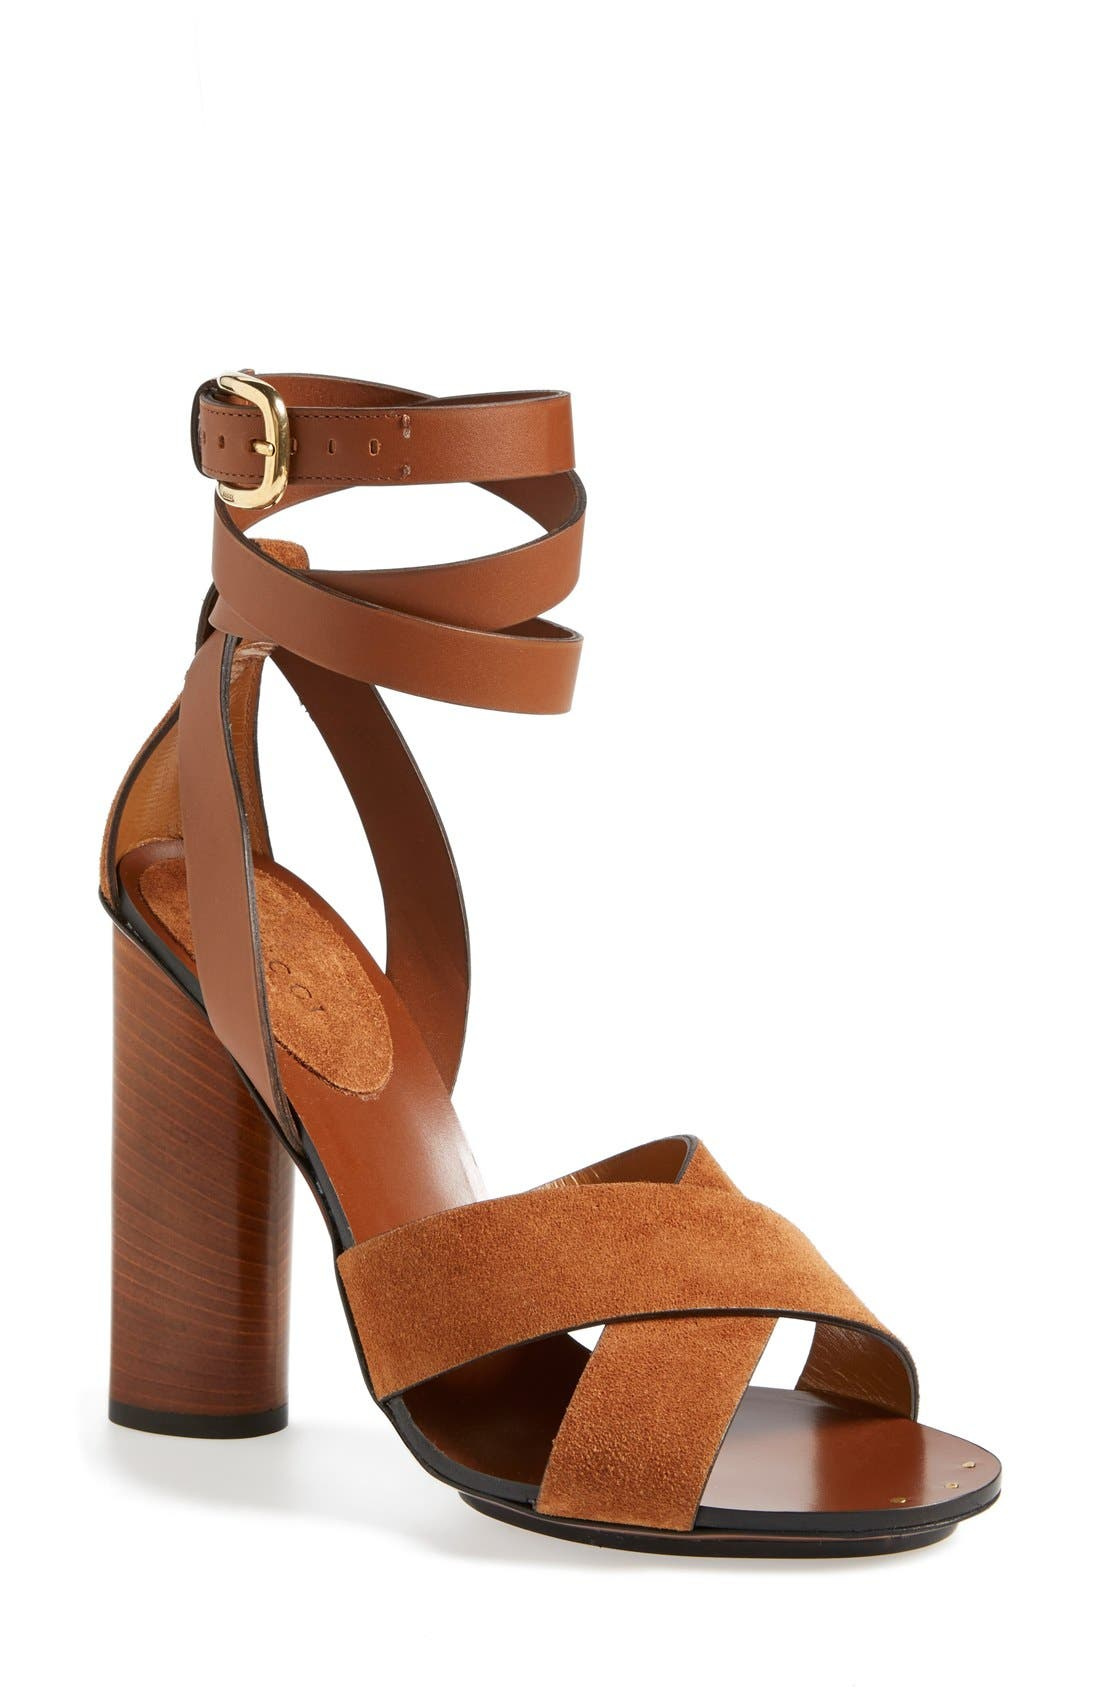 Main Image - Gucci 'Candy' Ankle Strap Sandal (Women)